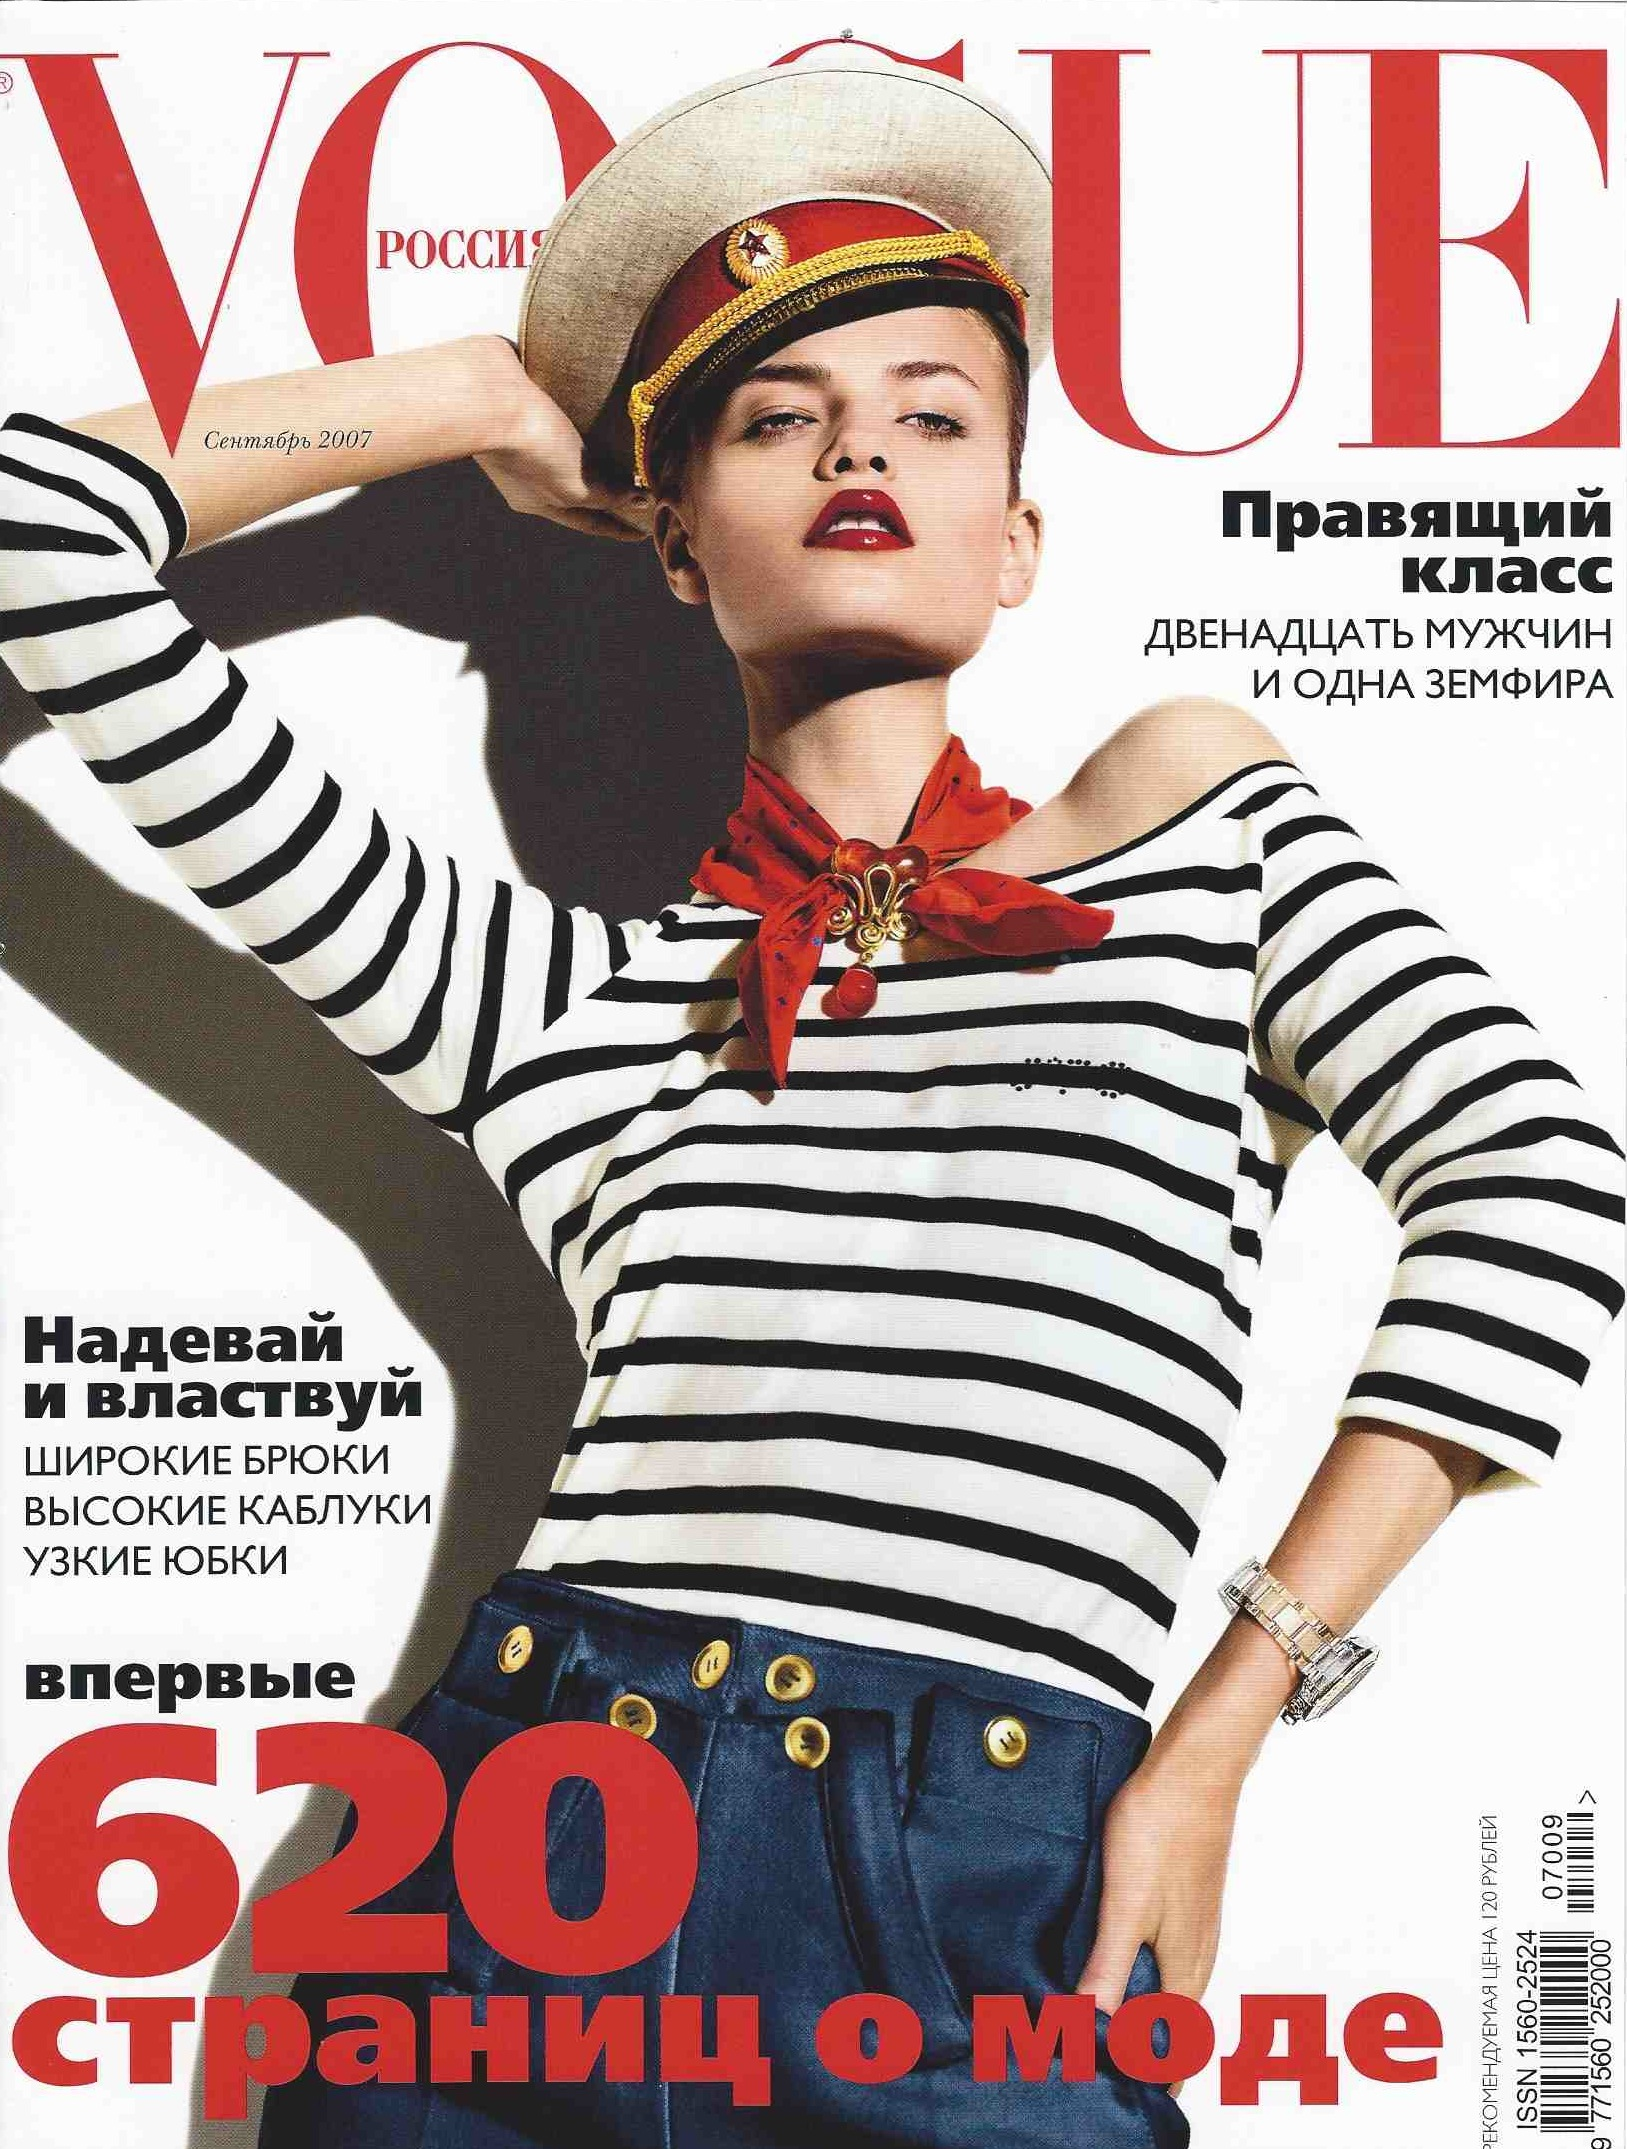 Miguel Riveriego - Russian Vogue - Natasha Poly copy.jpg